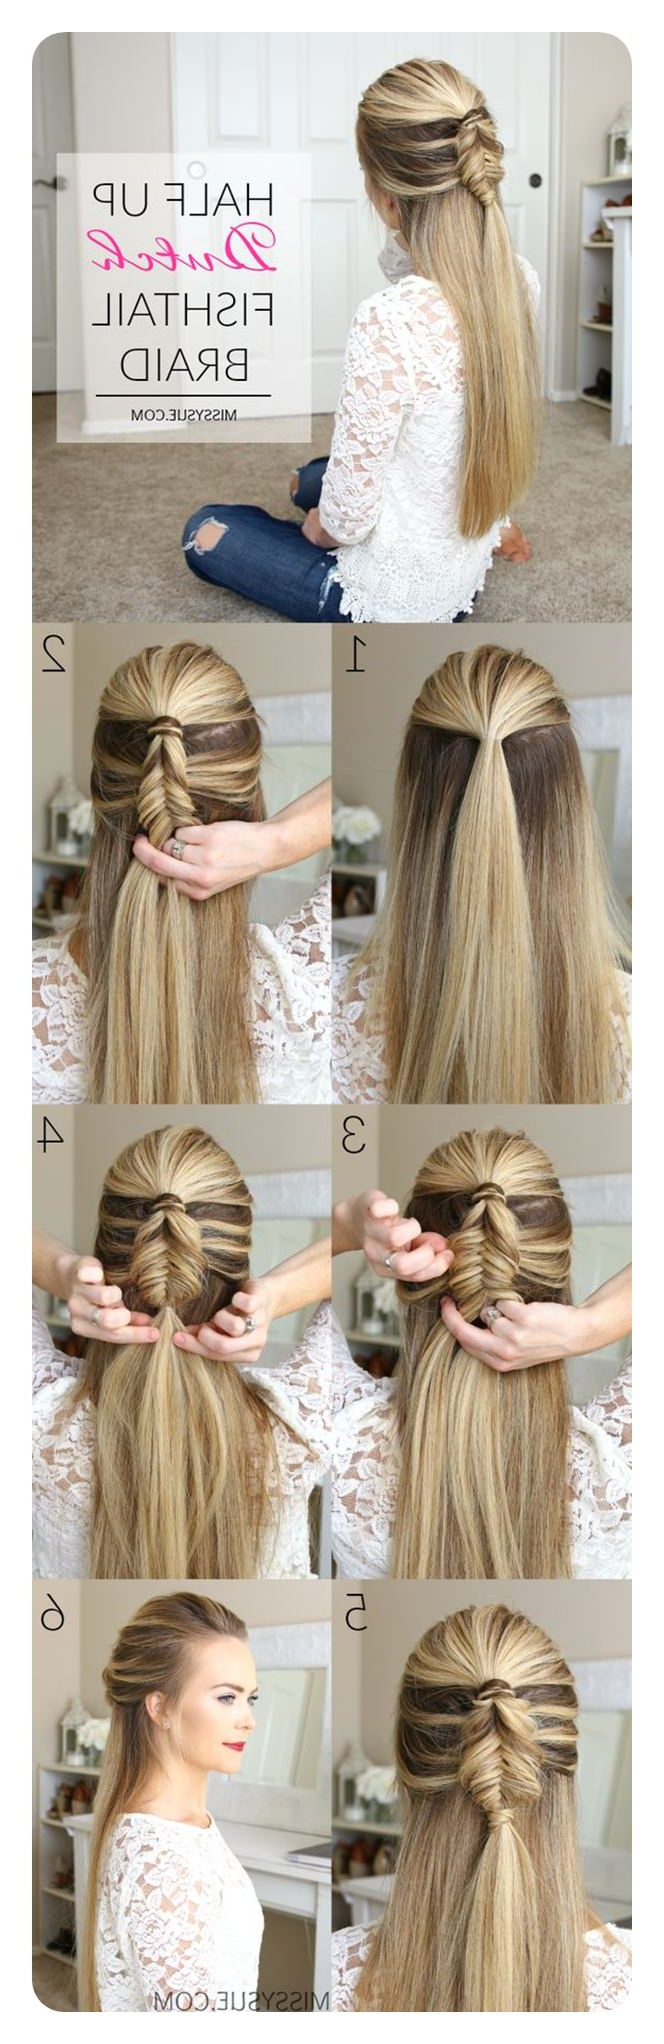 104 Easy Fishtail Braid Ideas And Their Stepstep With Regard To Recent Over The Shoulder Mermaid Braid Hairstyles (View 15 of 20)